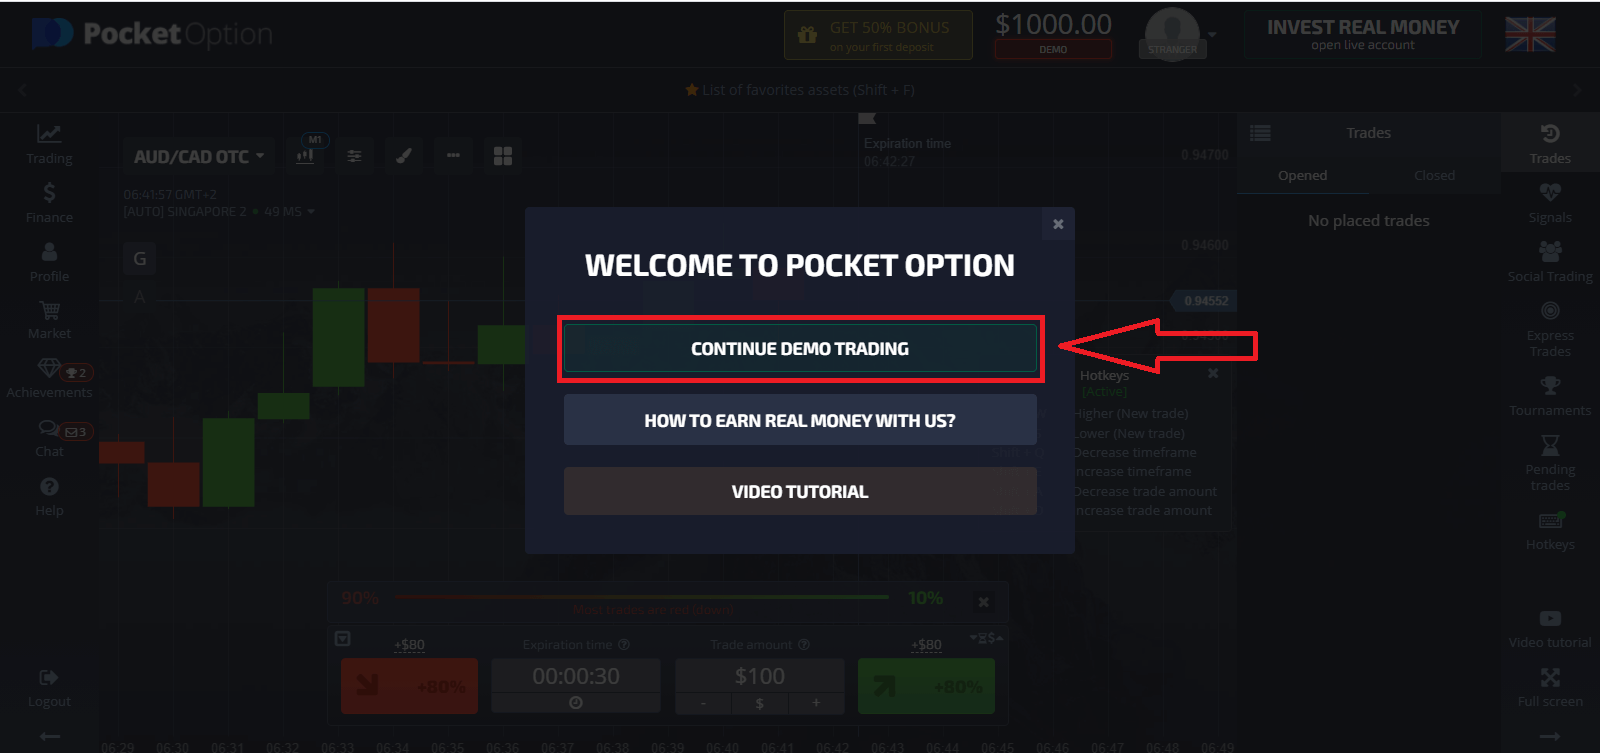 How to Open Account and Deposit Money at Pocket Option